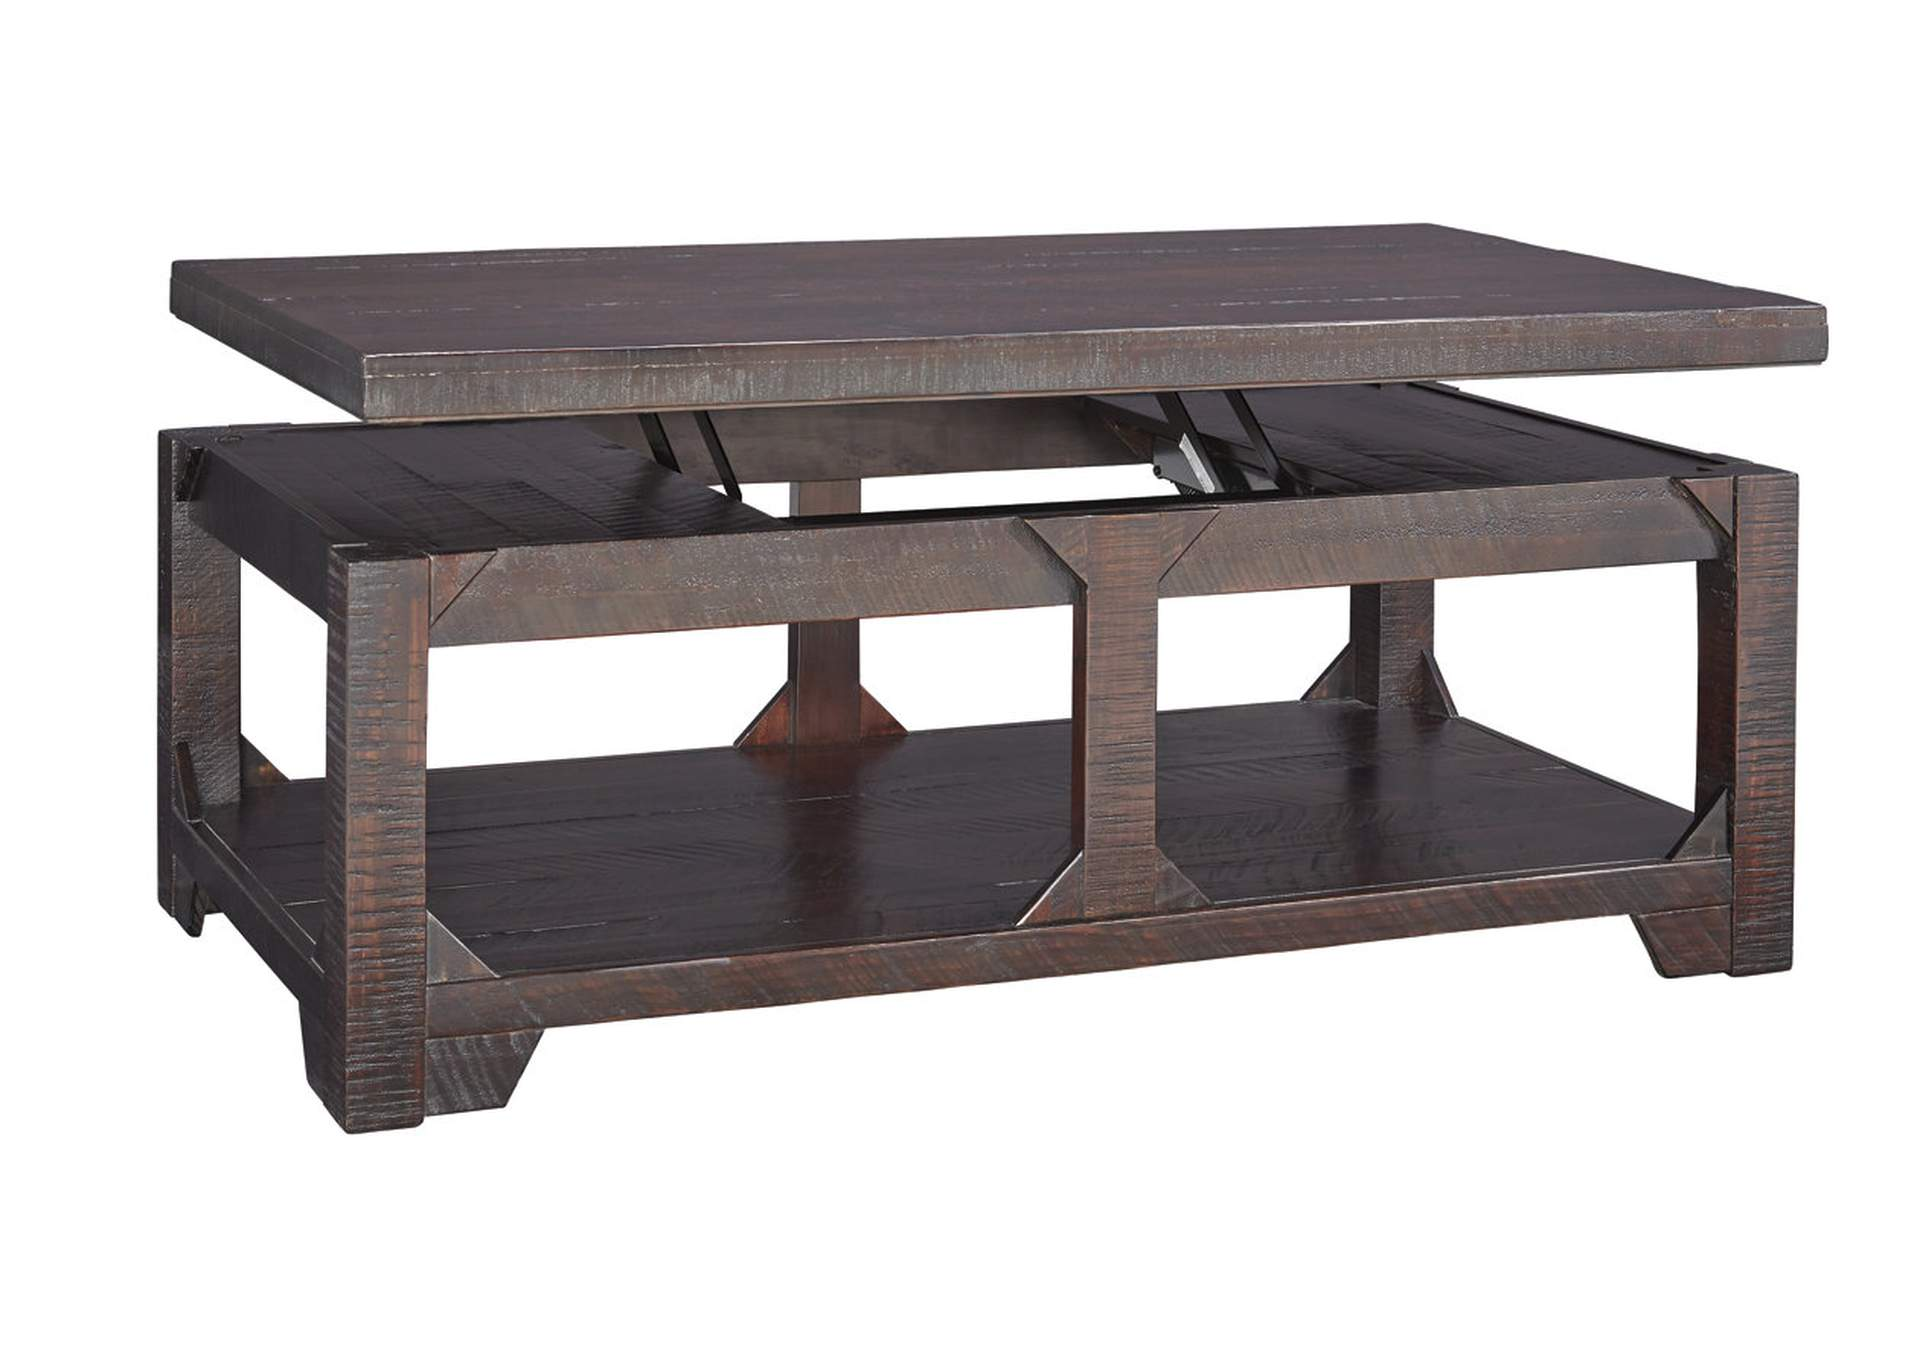 Furniture Outlet Chicago Llc Chicago Il Rogness Rustic Brown Lift Top Cocktail Table